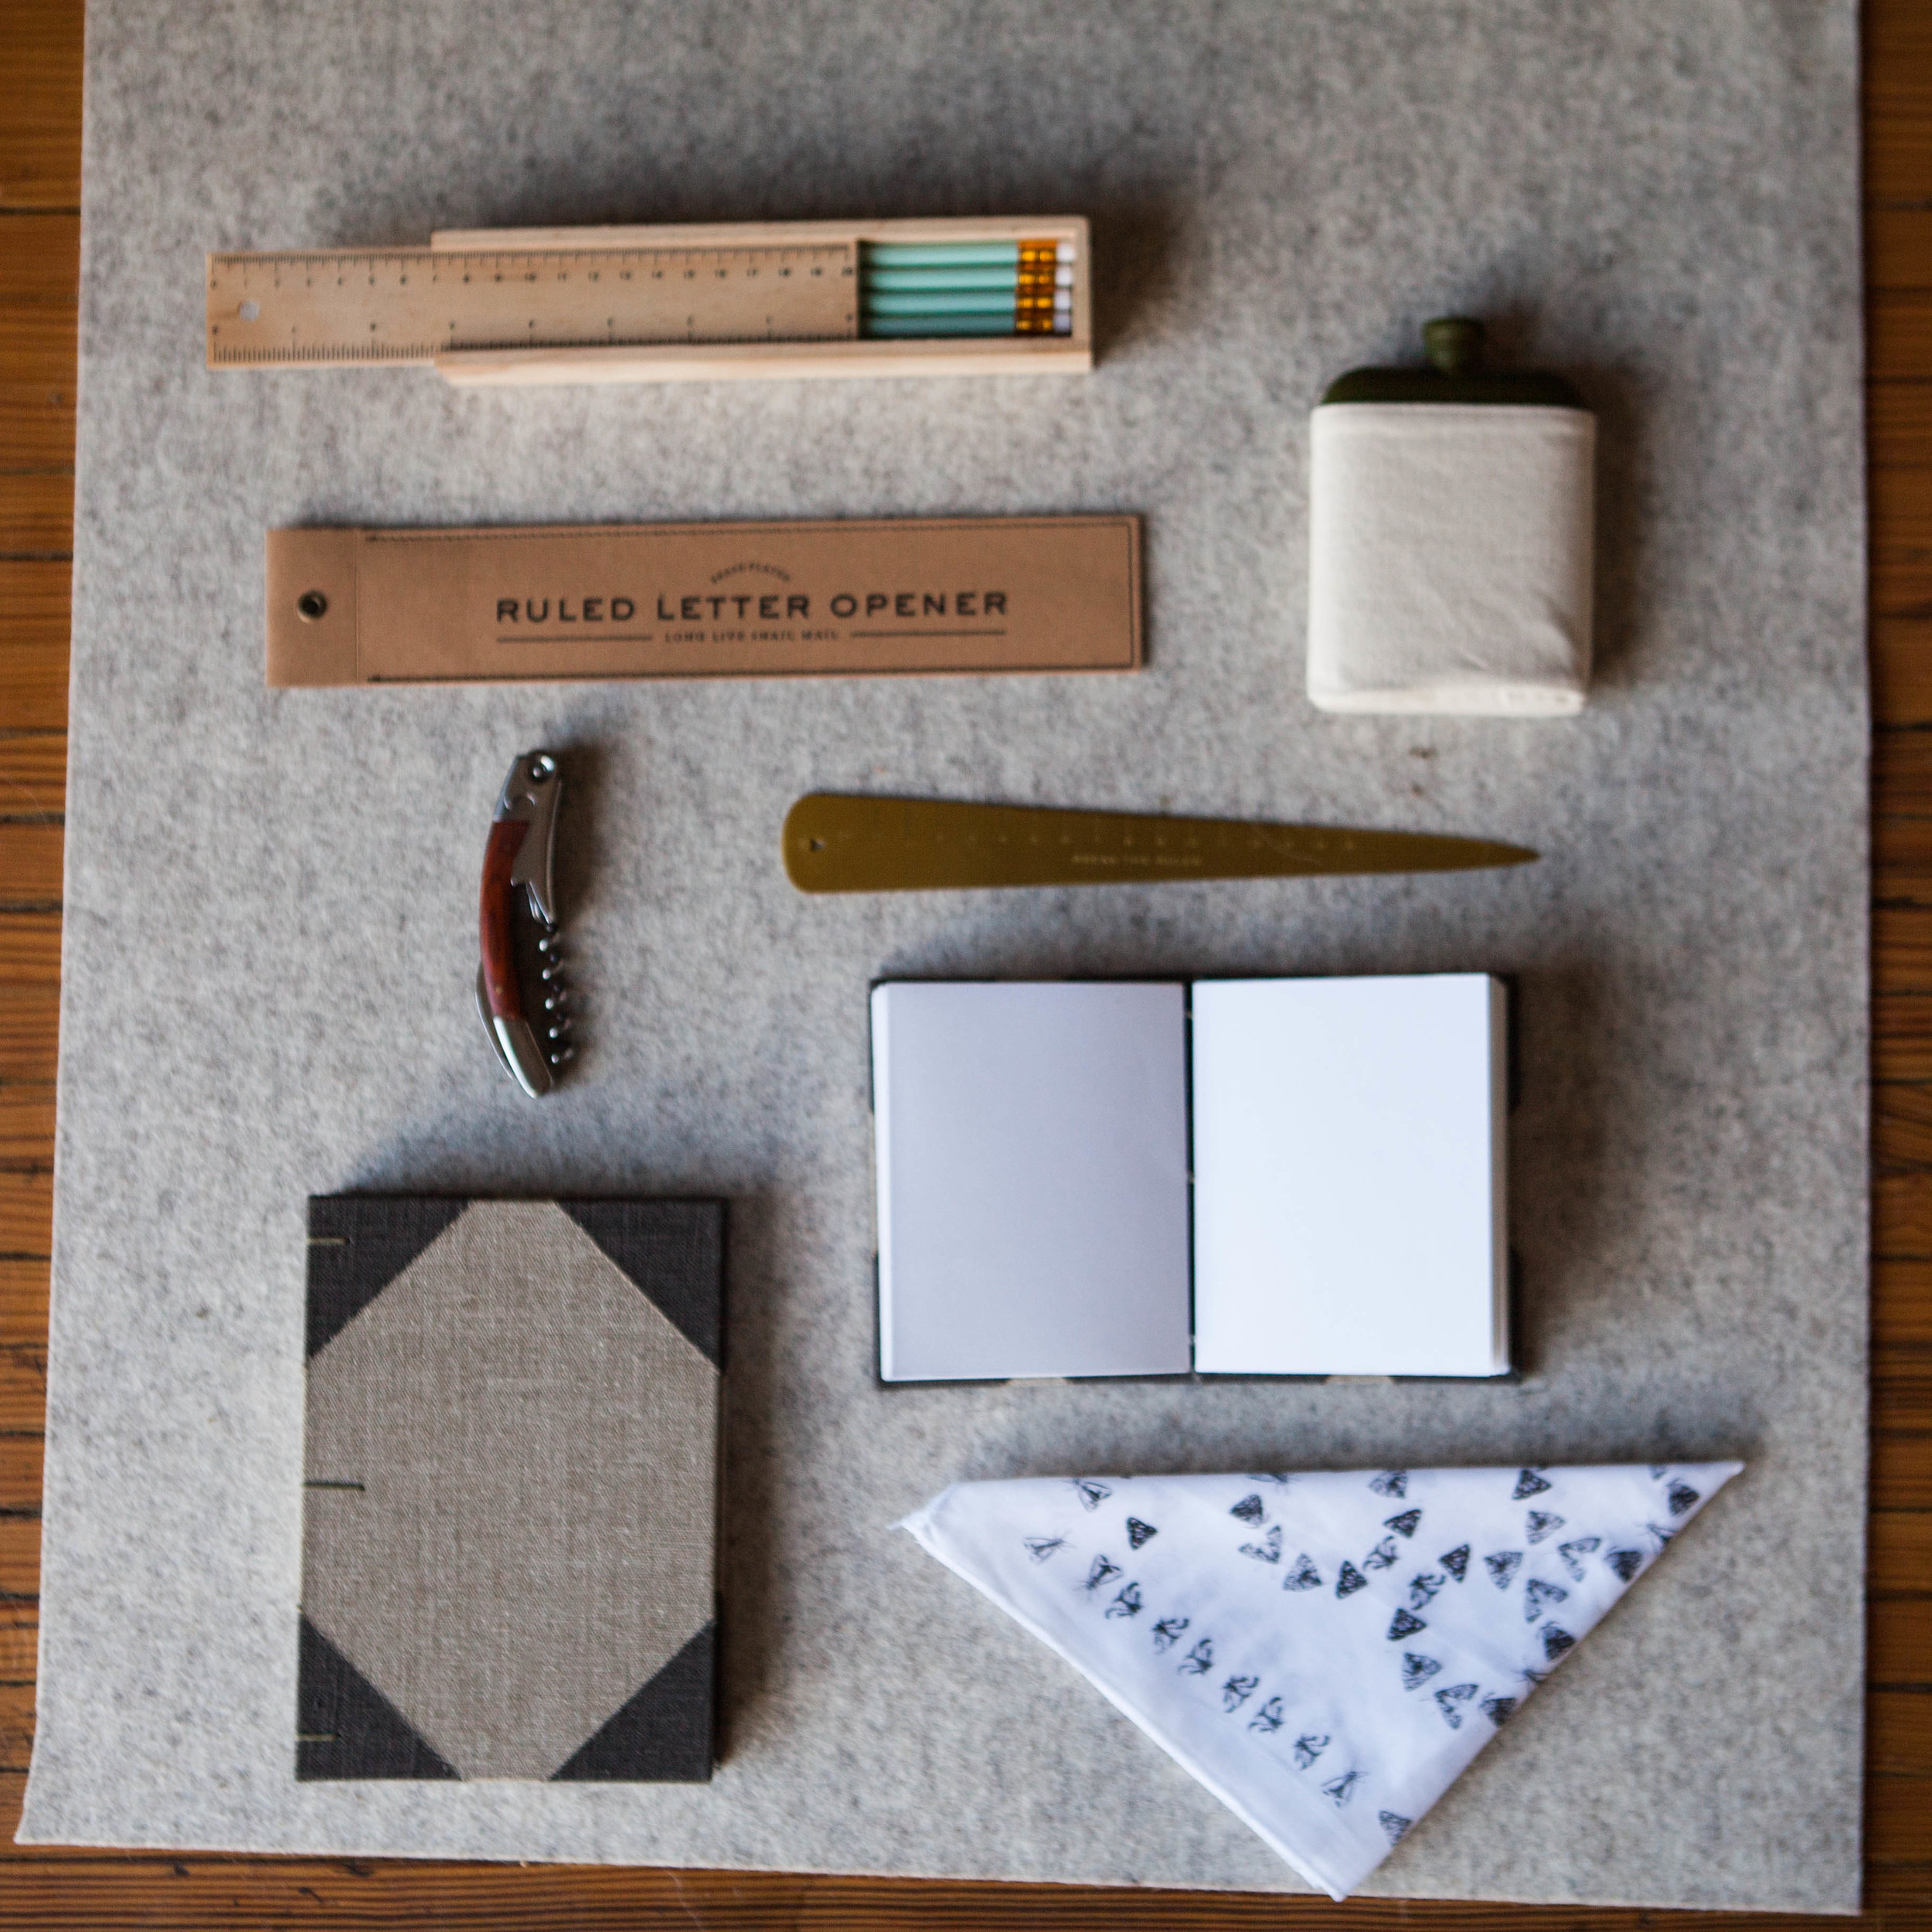 Pencil and Ruler Box Set $15, Ruled Letter Opener, $19, Bottle Opener $18, Handmade Linen Notebooks, $30-44, Handprinted Catherine Willett Handkerchief $11